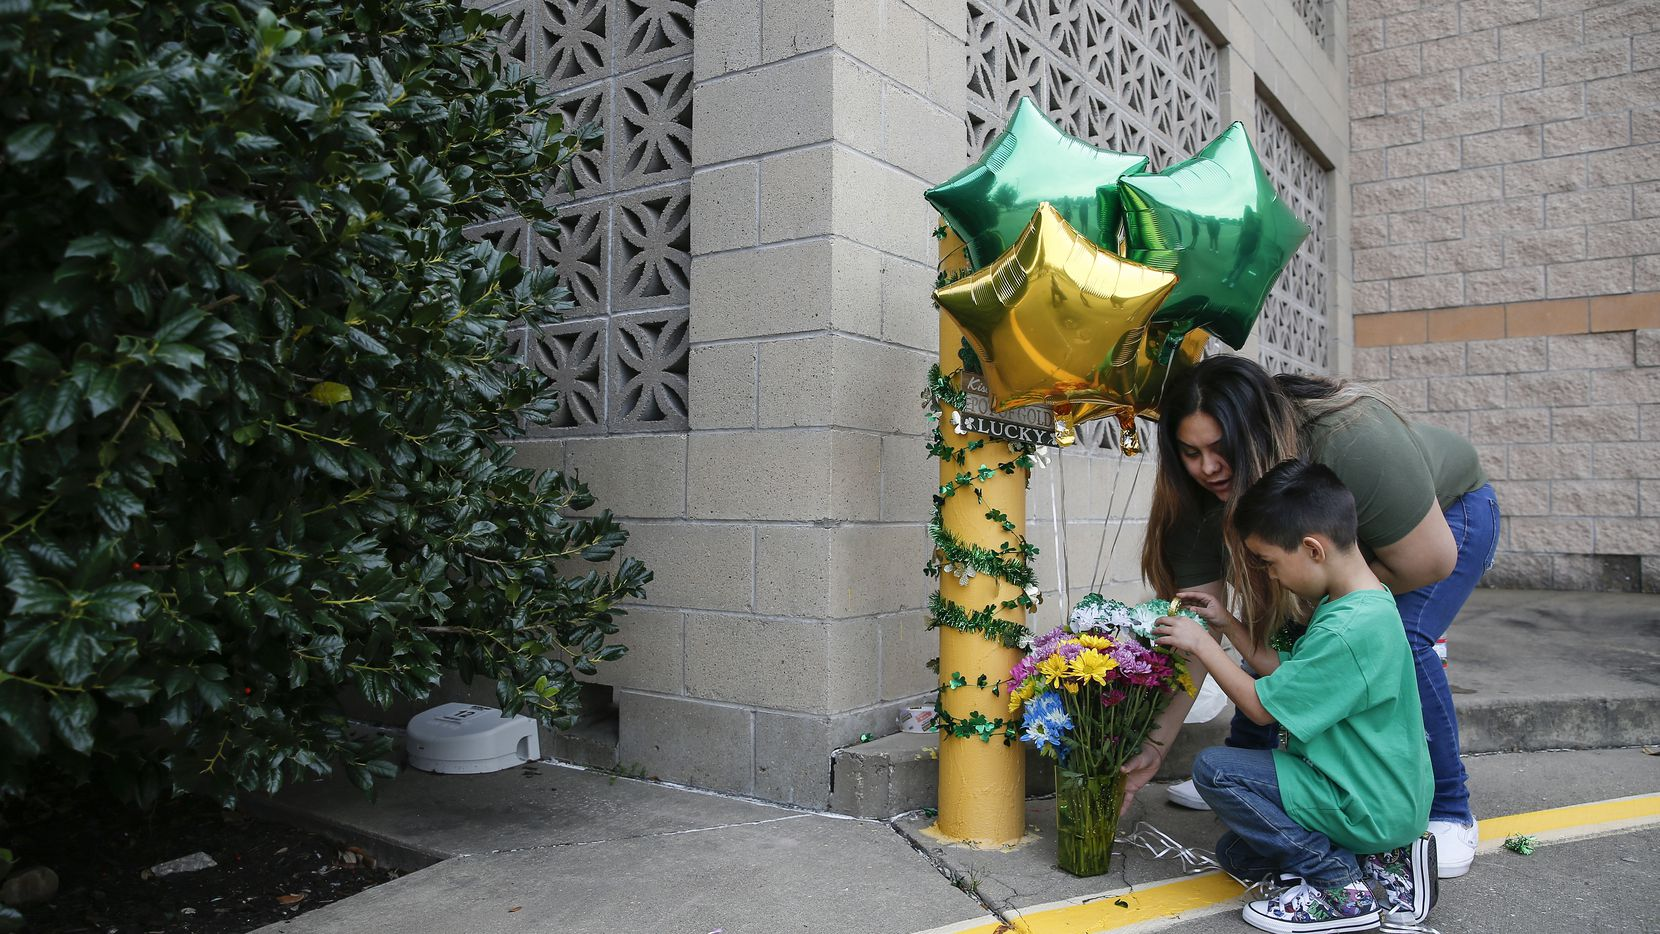 With the help of her brother, Joel Guerrero, 6, Destiny Rangel, who was best friends with Emily Bingabing, who was killed outside a Walmart in Far North Dallas in late January, decorates a memorial near the location of the homicide on Saturday, Feb. 22, 2020 in Dallas. Rangel says they plan to continue decorating the location once a month. (Ryan Michalesko/The Dallas Morning News)